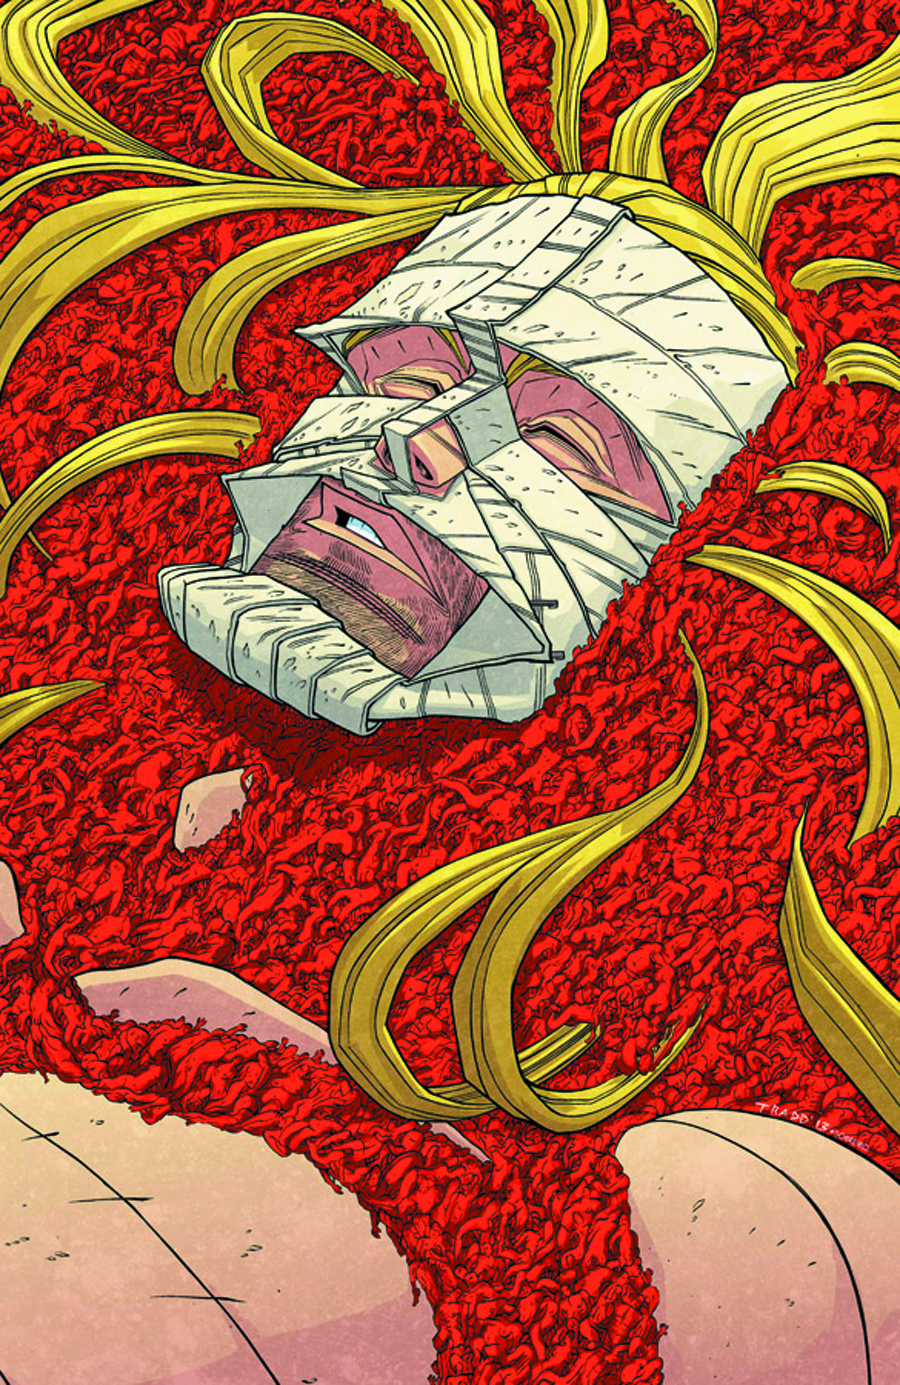 LEGEND OF LUTHER STRODE #6 (OF 6)